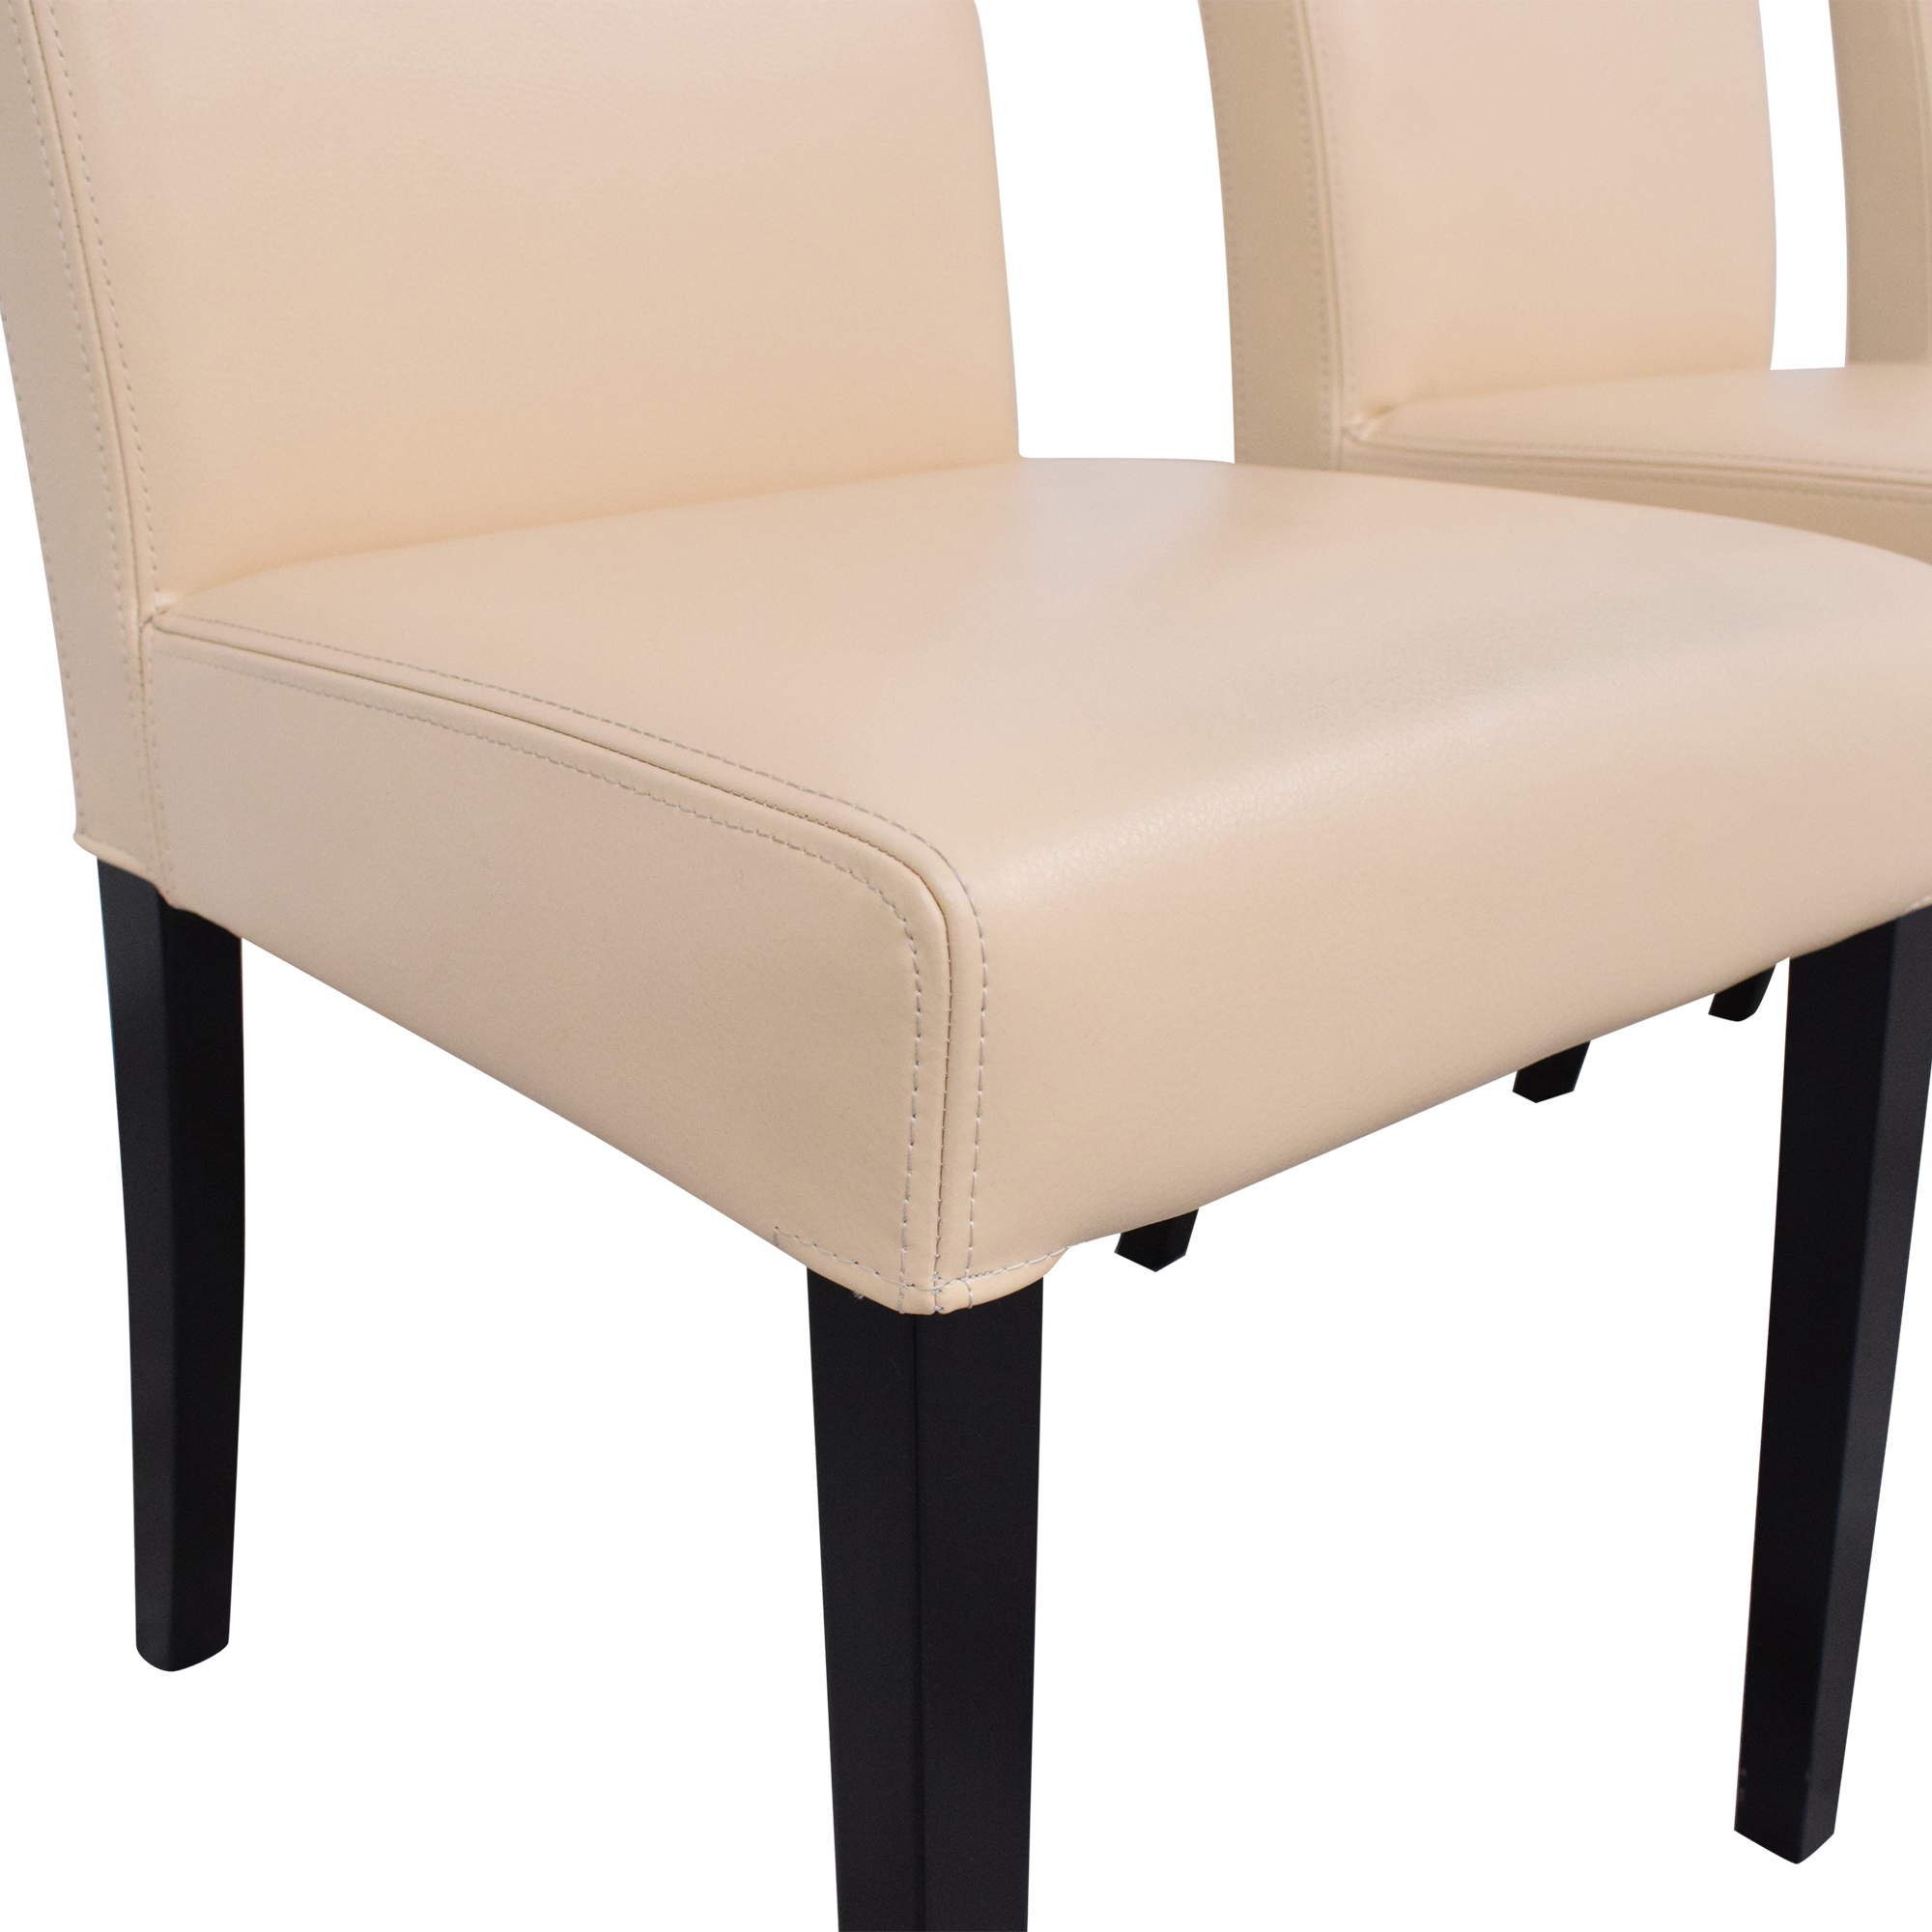 Crate & Barrel Lowe Ivory Dining Chairs / Chairs